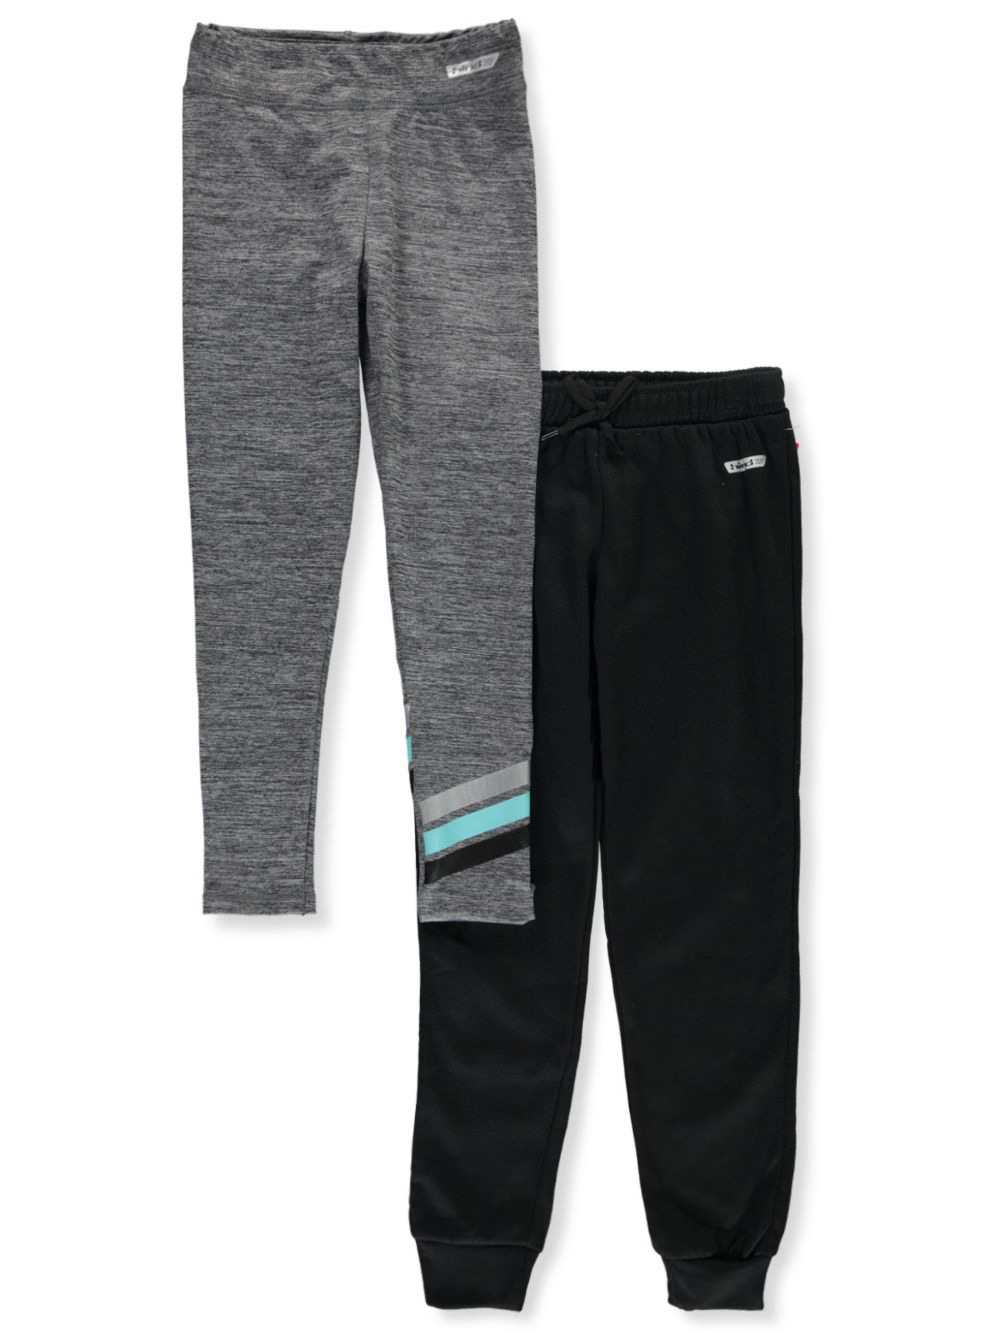 Girls Charcoal Sweatpants and Joggers